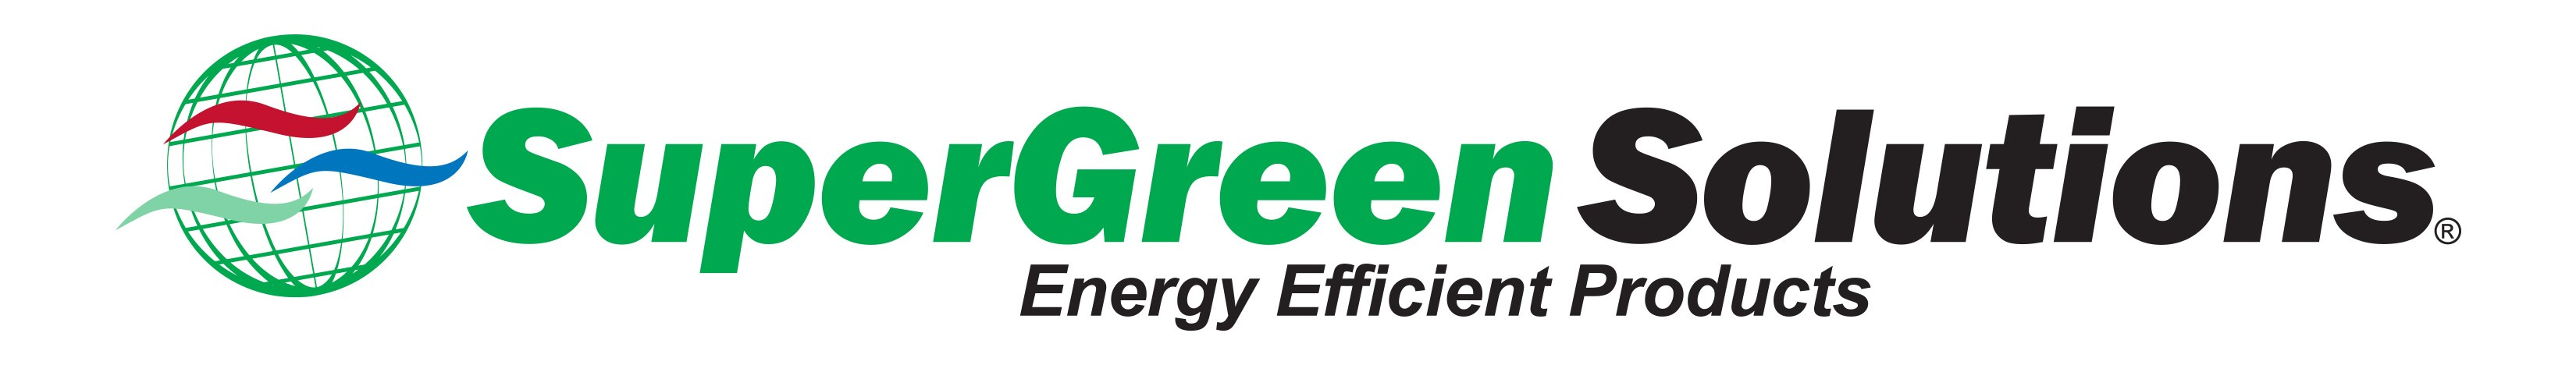 Energy Efficient Product B2B & Retail Franchise